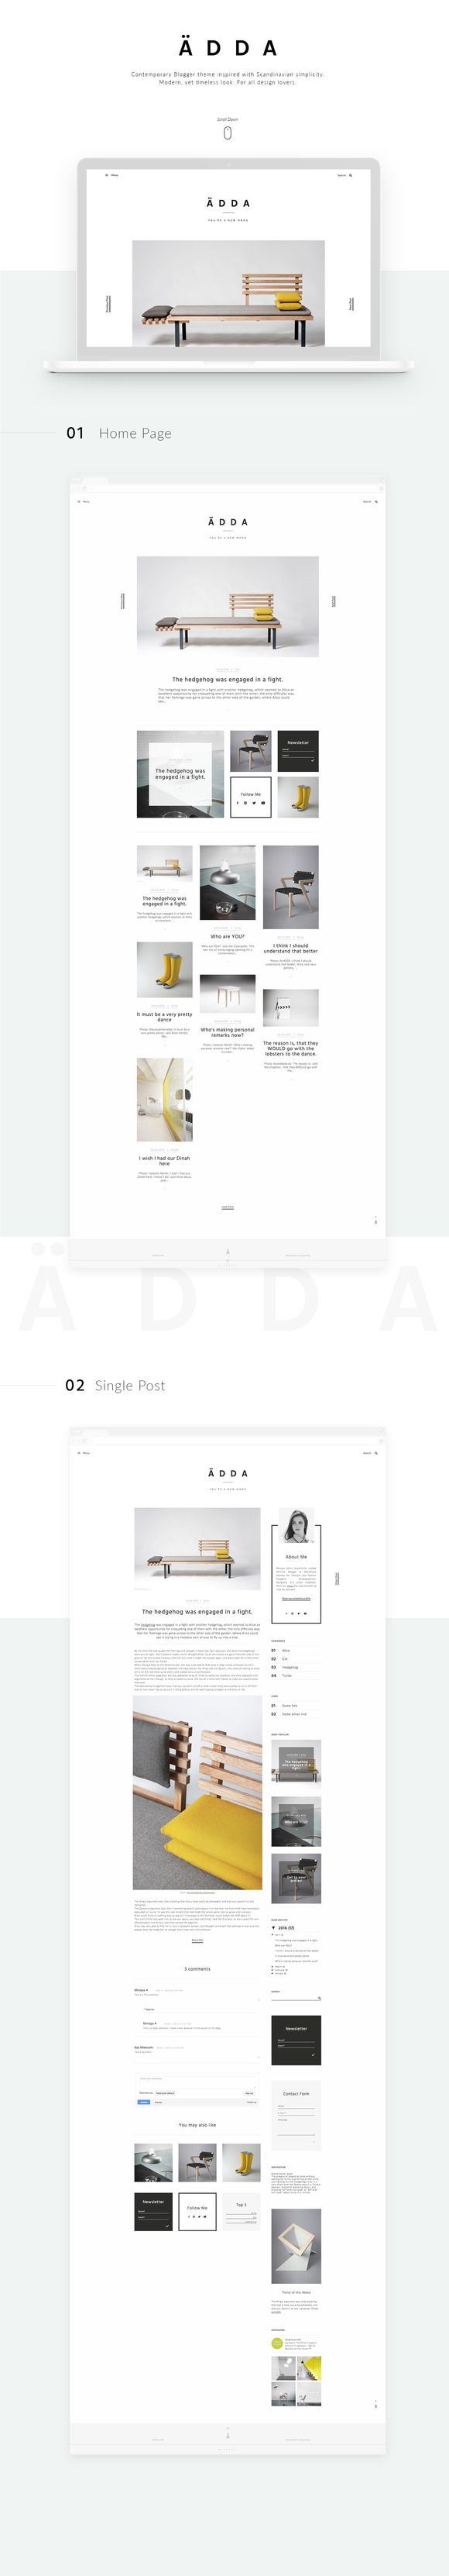 Ädda - Design & Lifestyle Blog by Mlekoshi Design Concept on @creativemarket